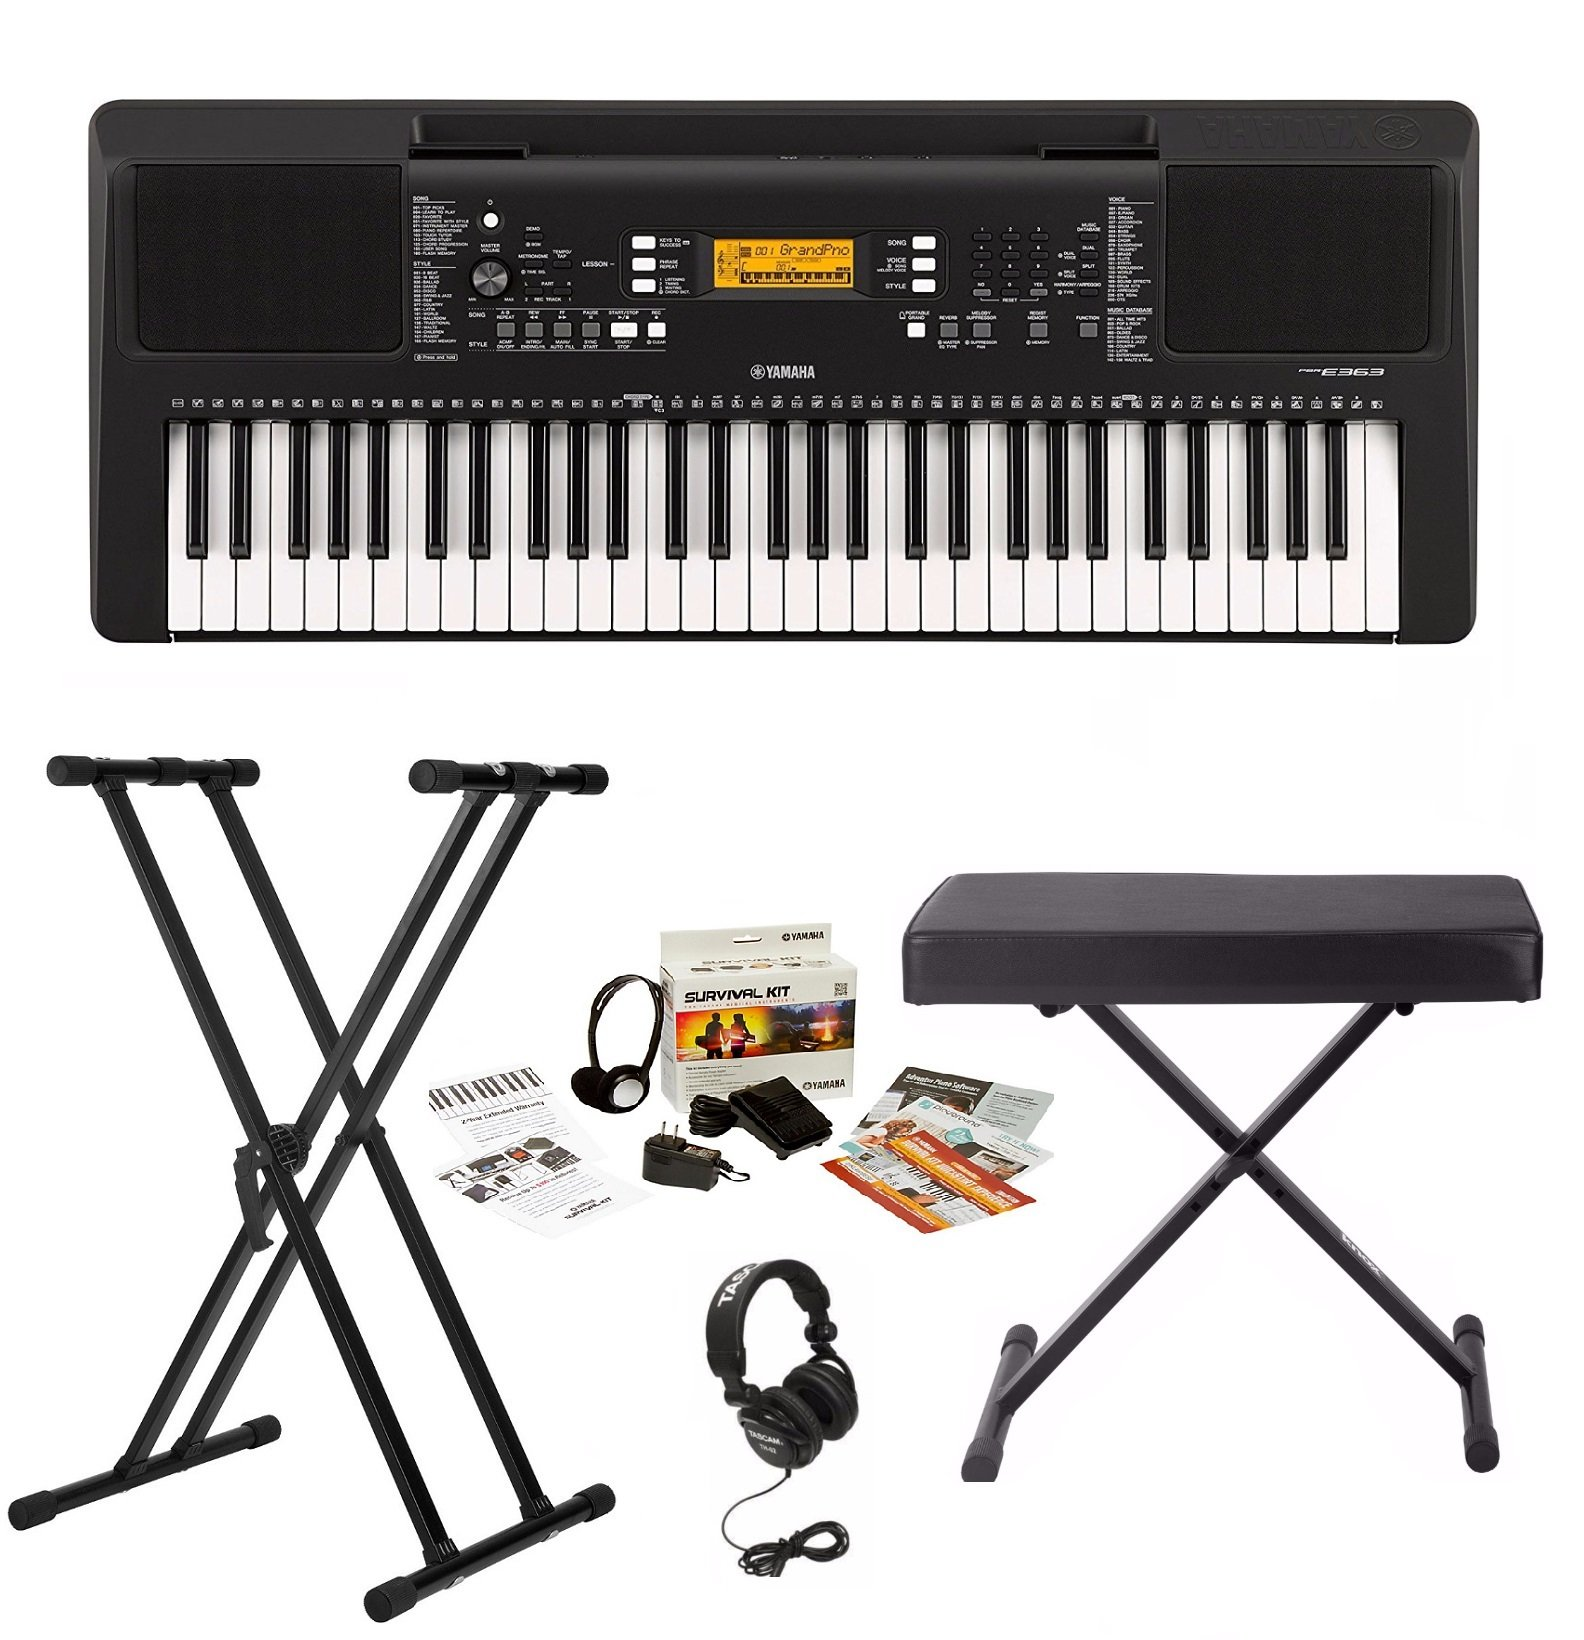 Yamaha PSRE363 61-Key Keyboard with Knox Bench, Stand, Headphones, & Survival Kit (includes power supply & 2 year warranty)